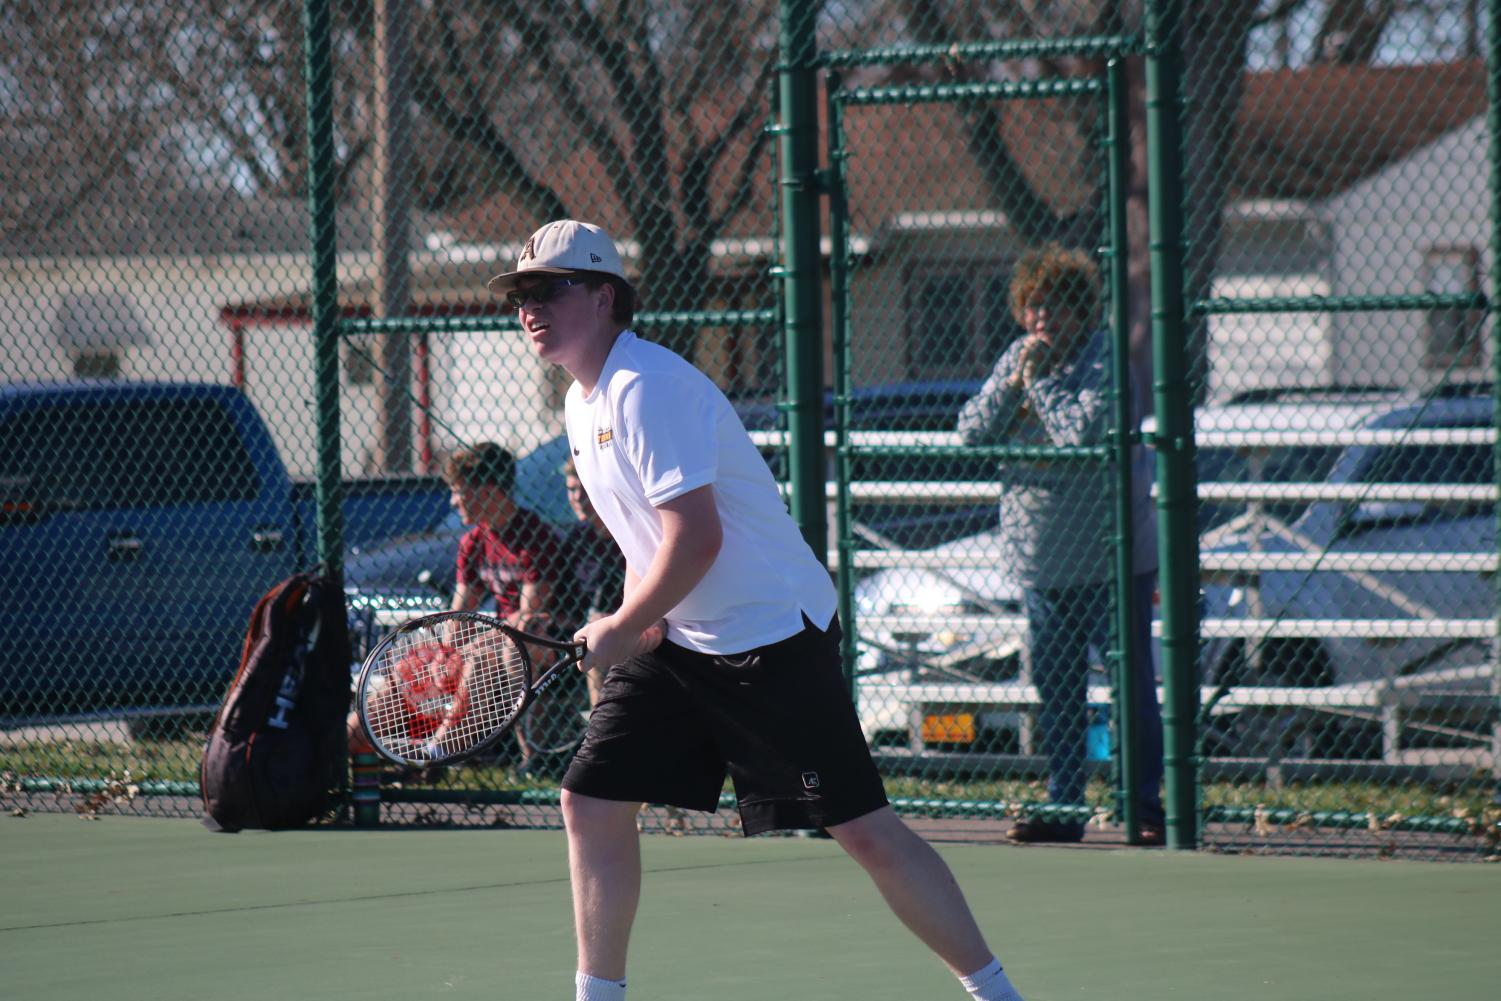 Senior Avery Andersen stands ready to return the ball. Andersen has won two singles matches so far this season, against Glenwood and Creston. This is his first year suiting varsity.